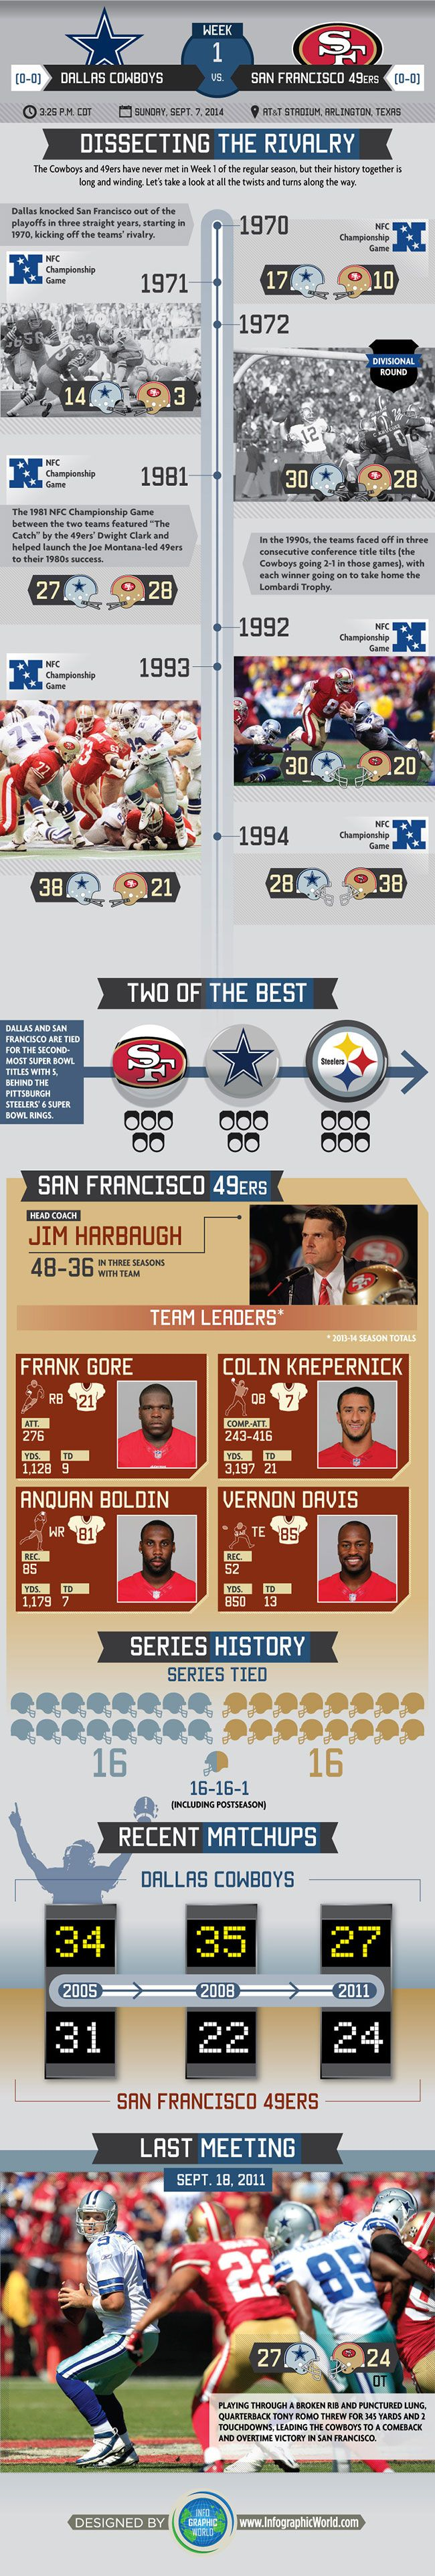 A Visual Breakdown of the Cowboys & 49ers Rivalry #DallasCowboys